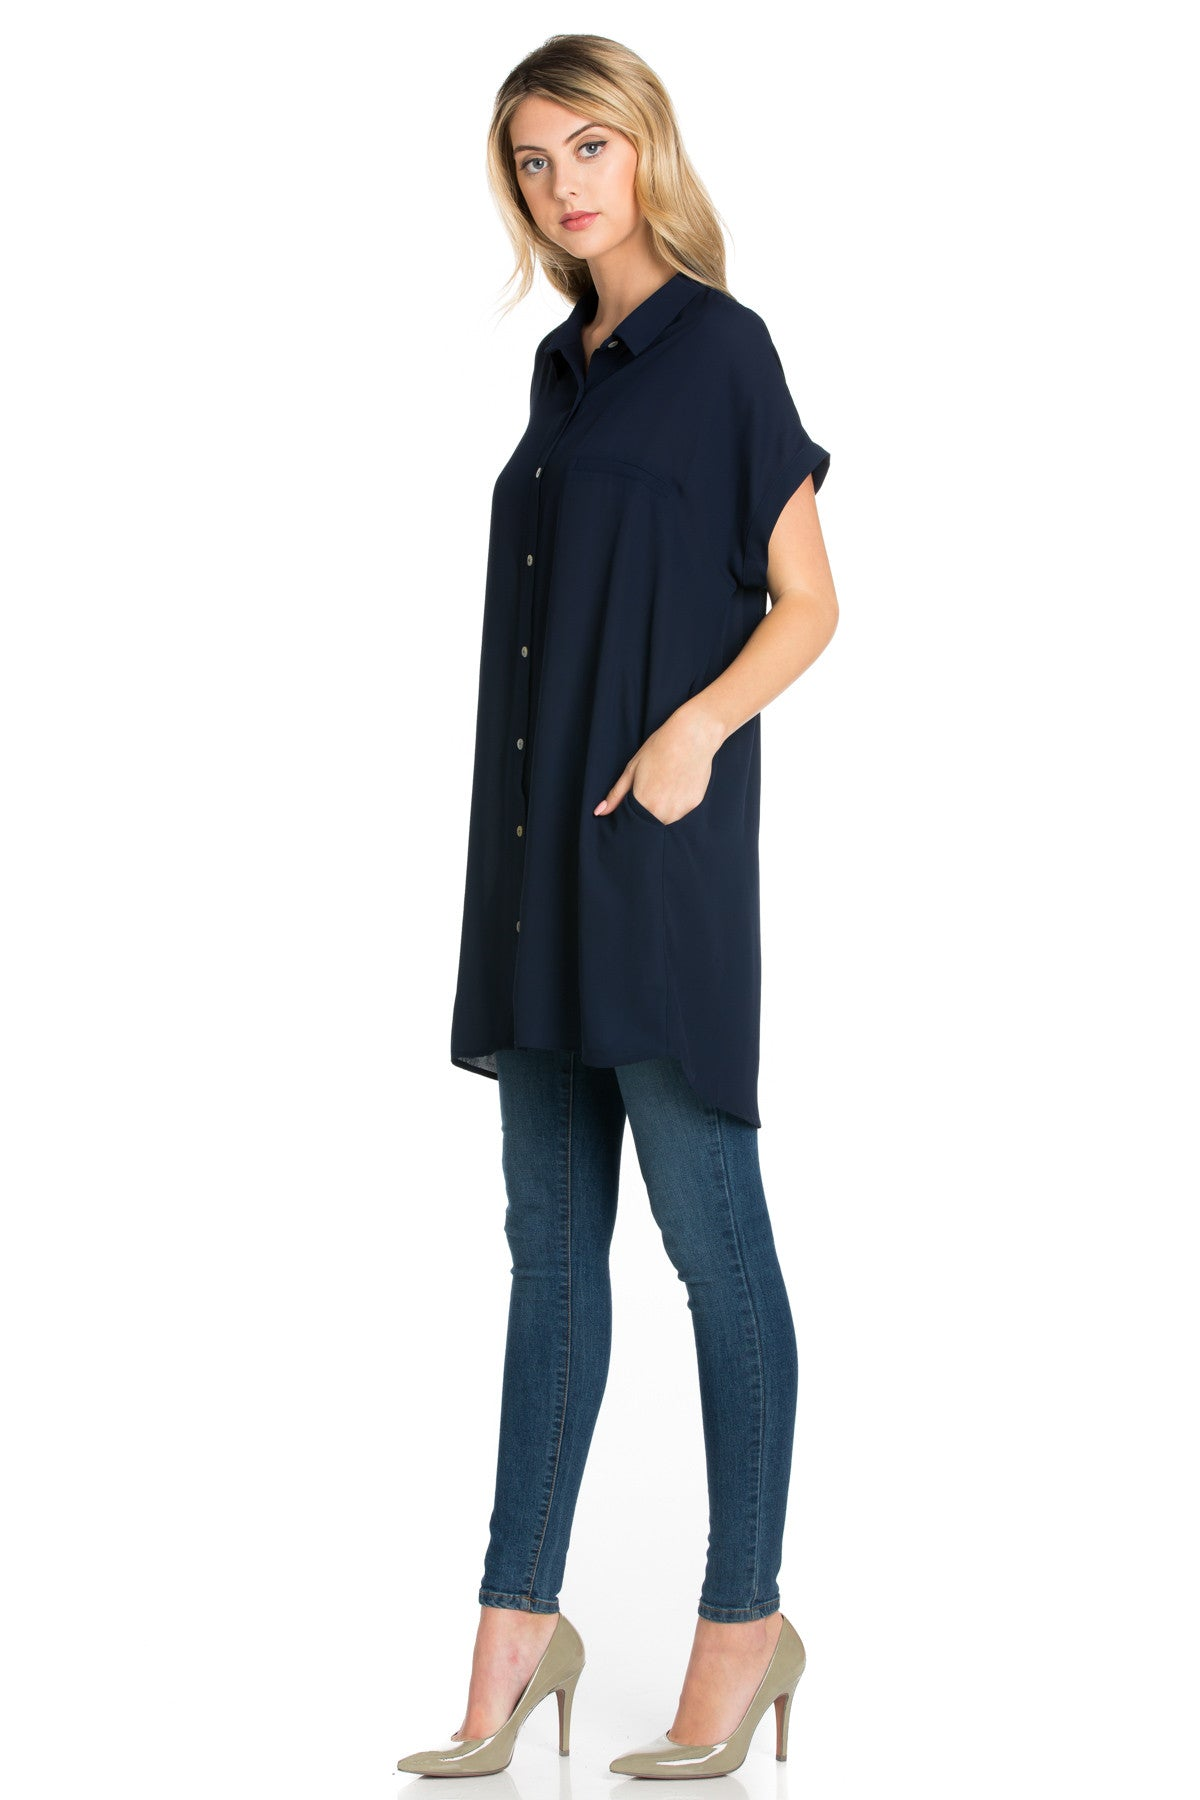 Short Sleeve Longline Button Down Chiffon Top in Midnight Blue - Tops - My Yuccie - 1